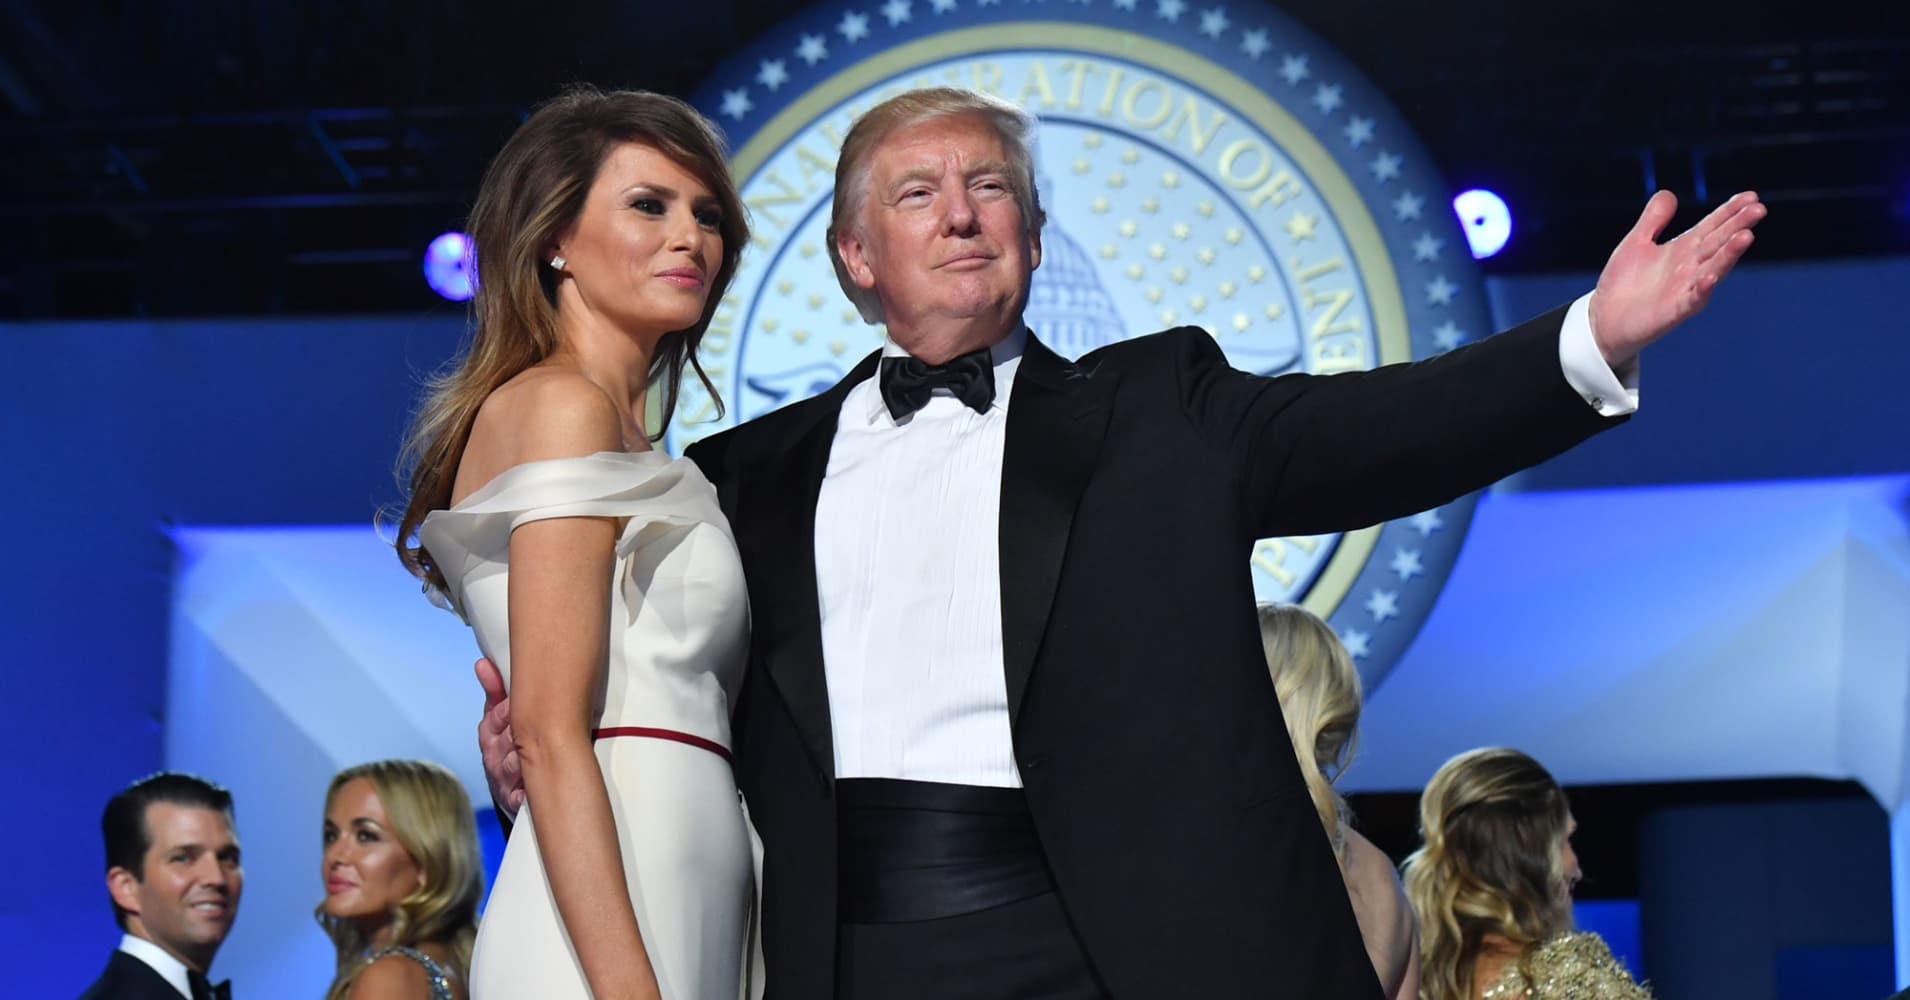 Trump's inaugural committee fundraising was a mess from the start